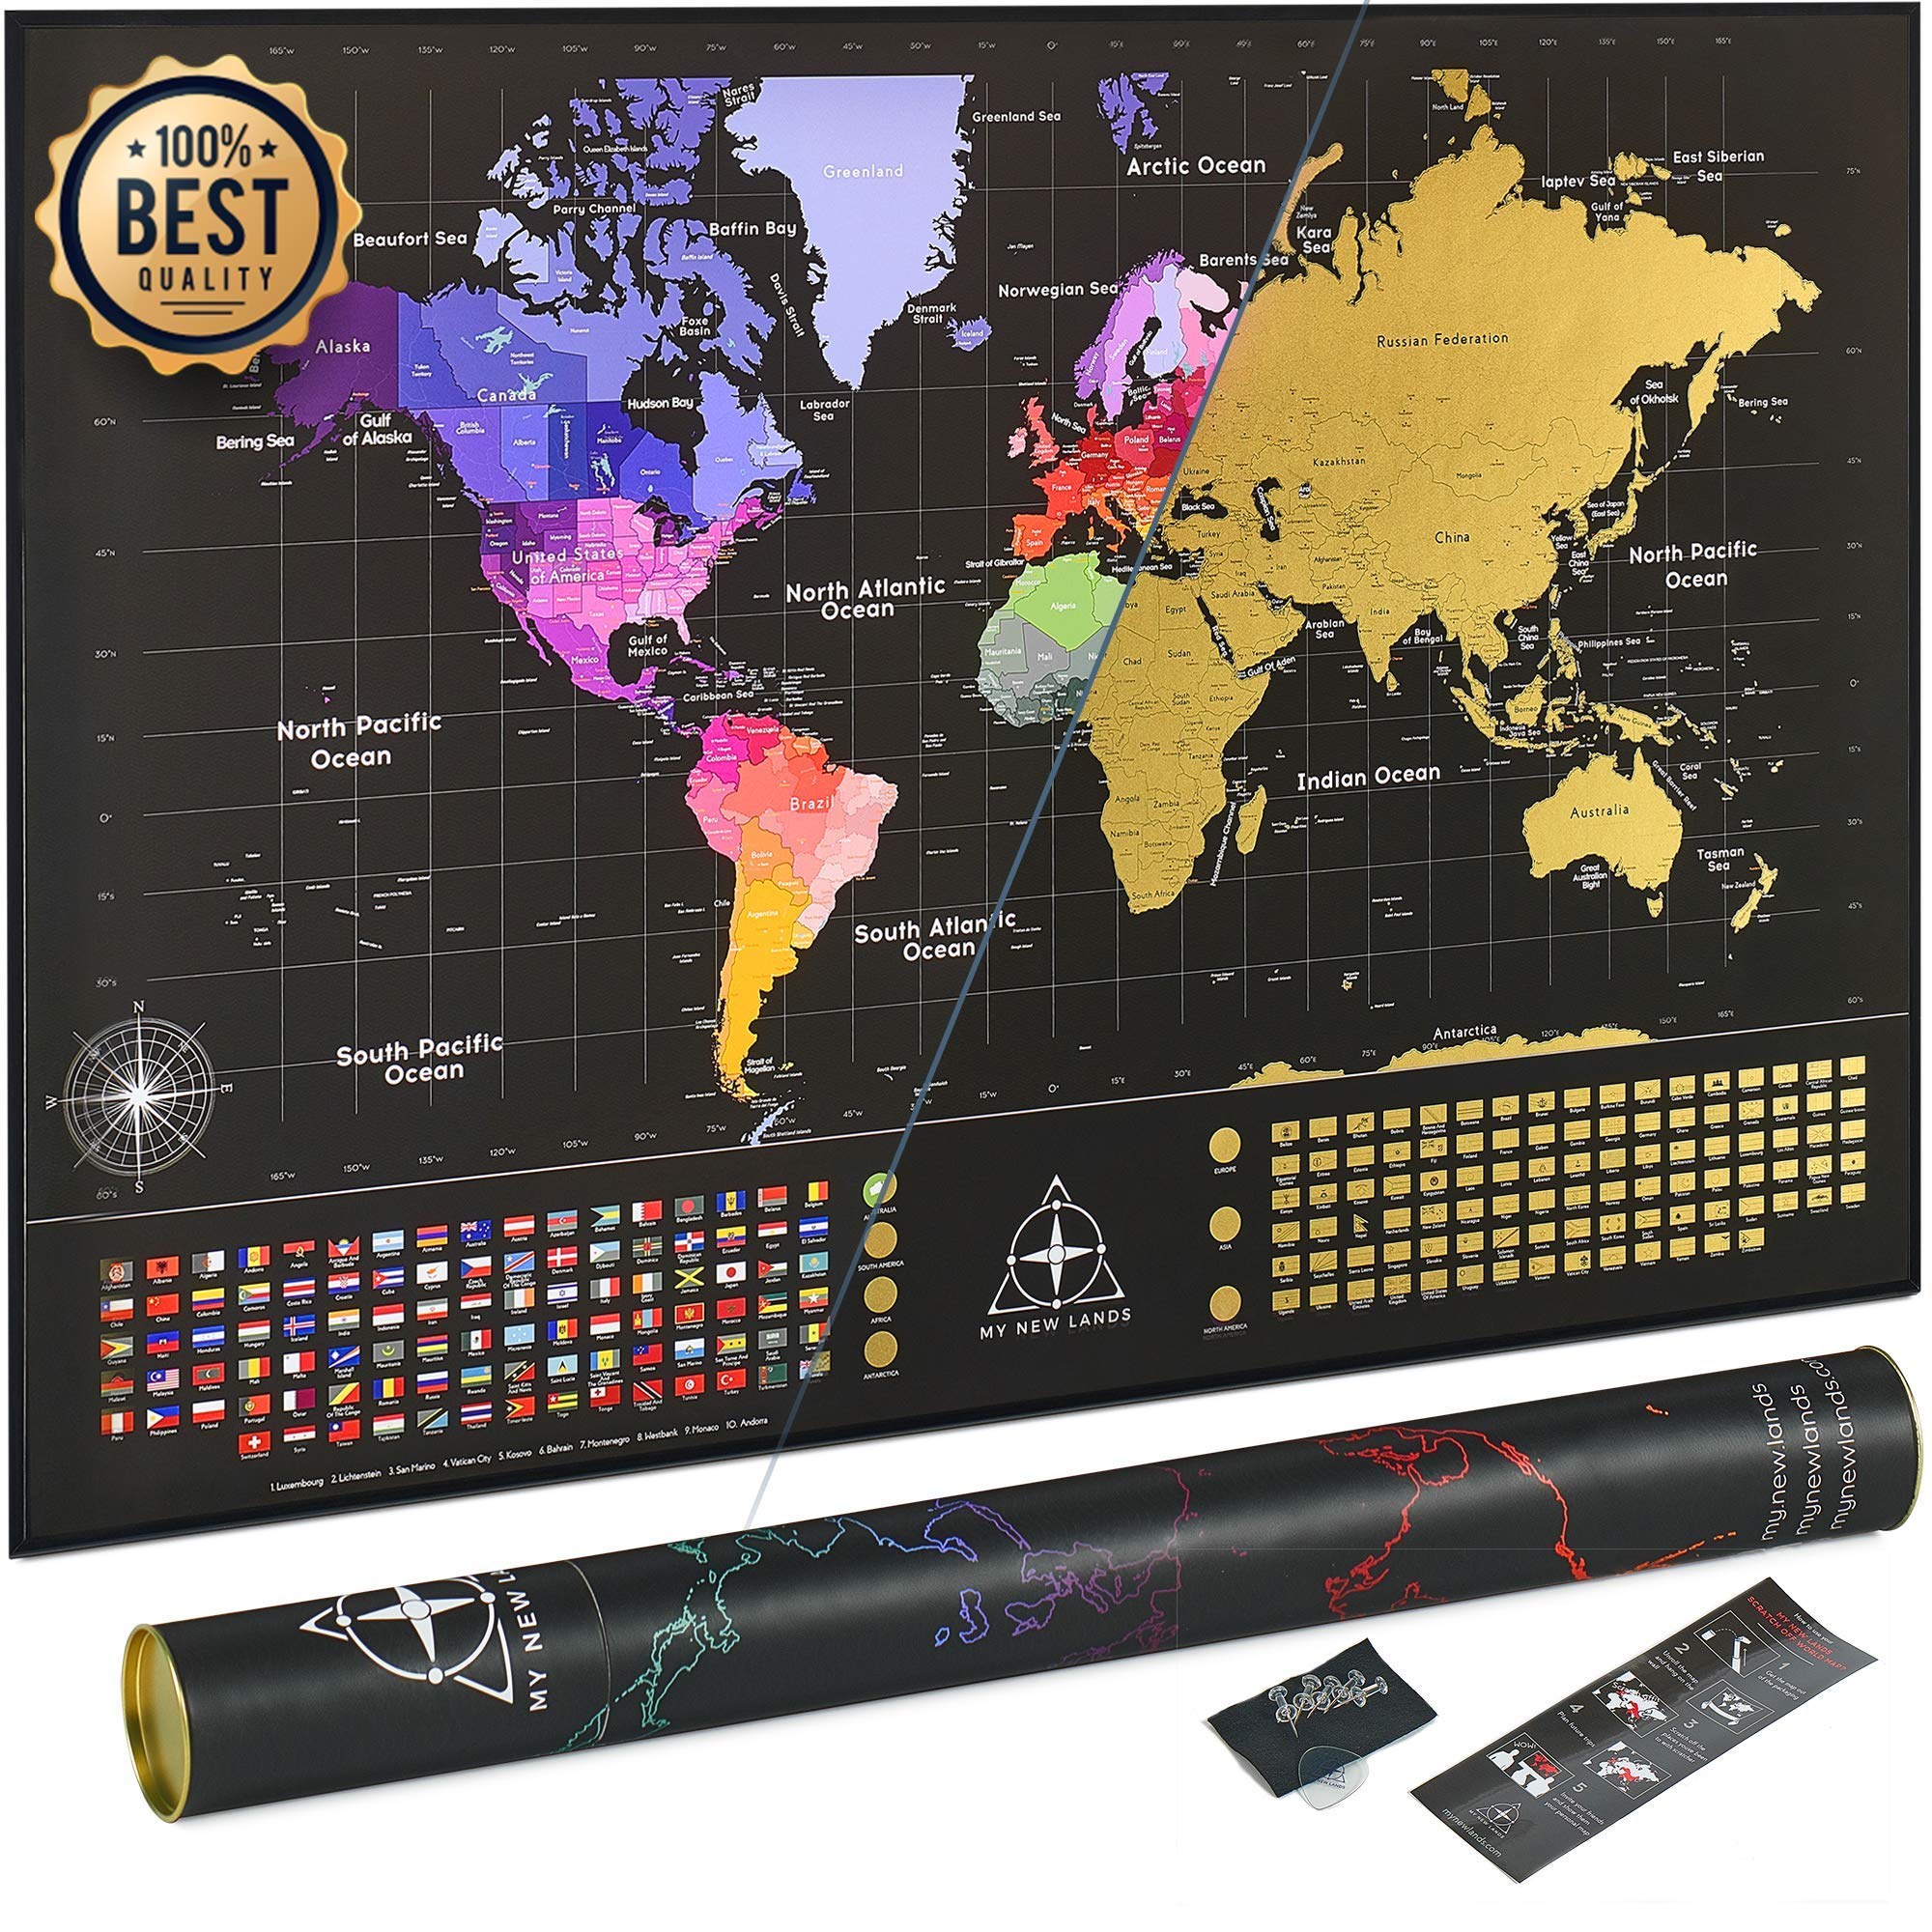 Newest 2019 Extra Large Scratch Off Map of The World | Premium Quality 36x24 World Map Poster w/US States & Country Flags | Original Deluxe Large Travel Map: Detailed Cartography | Made in Europe by MyNewLands